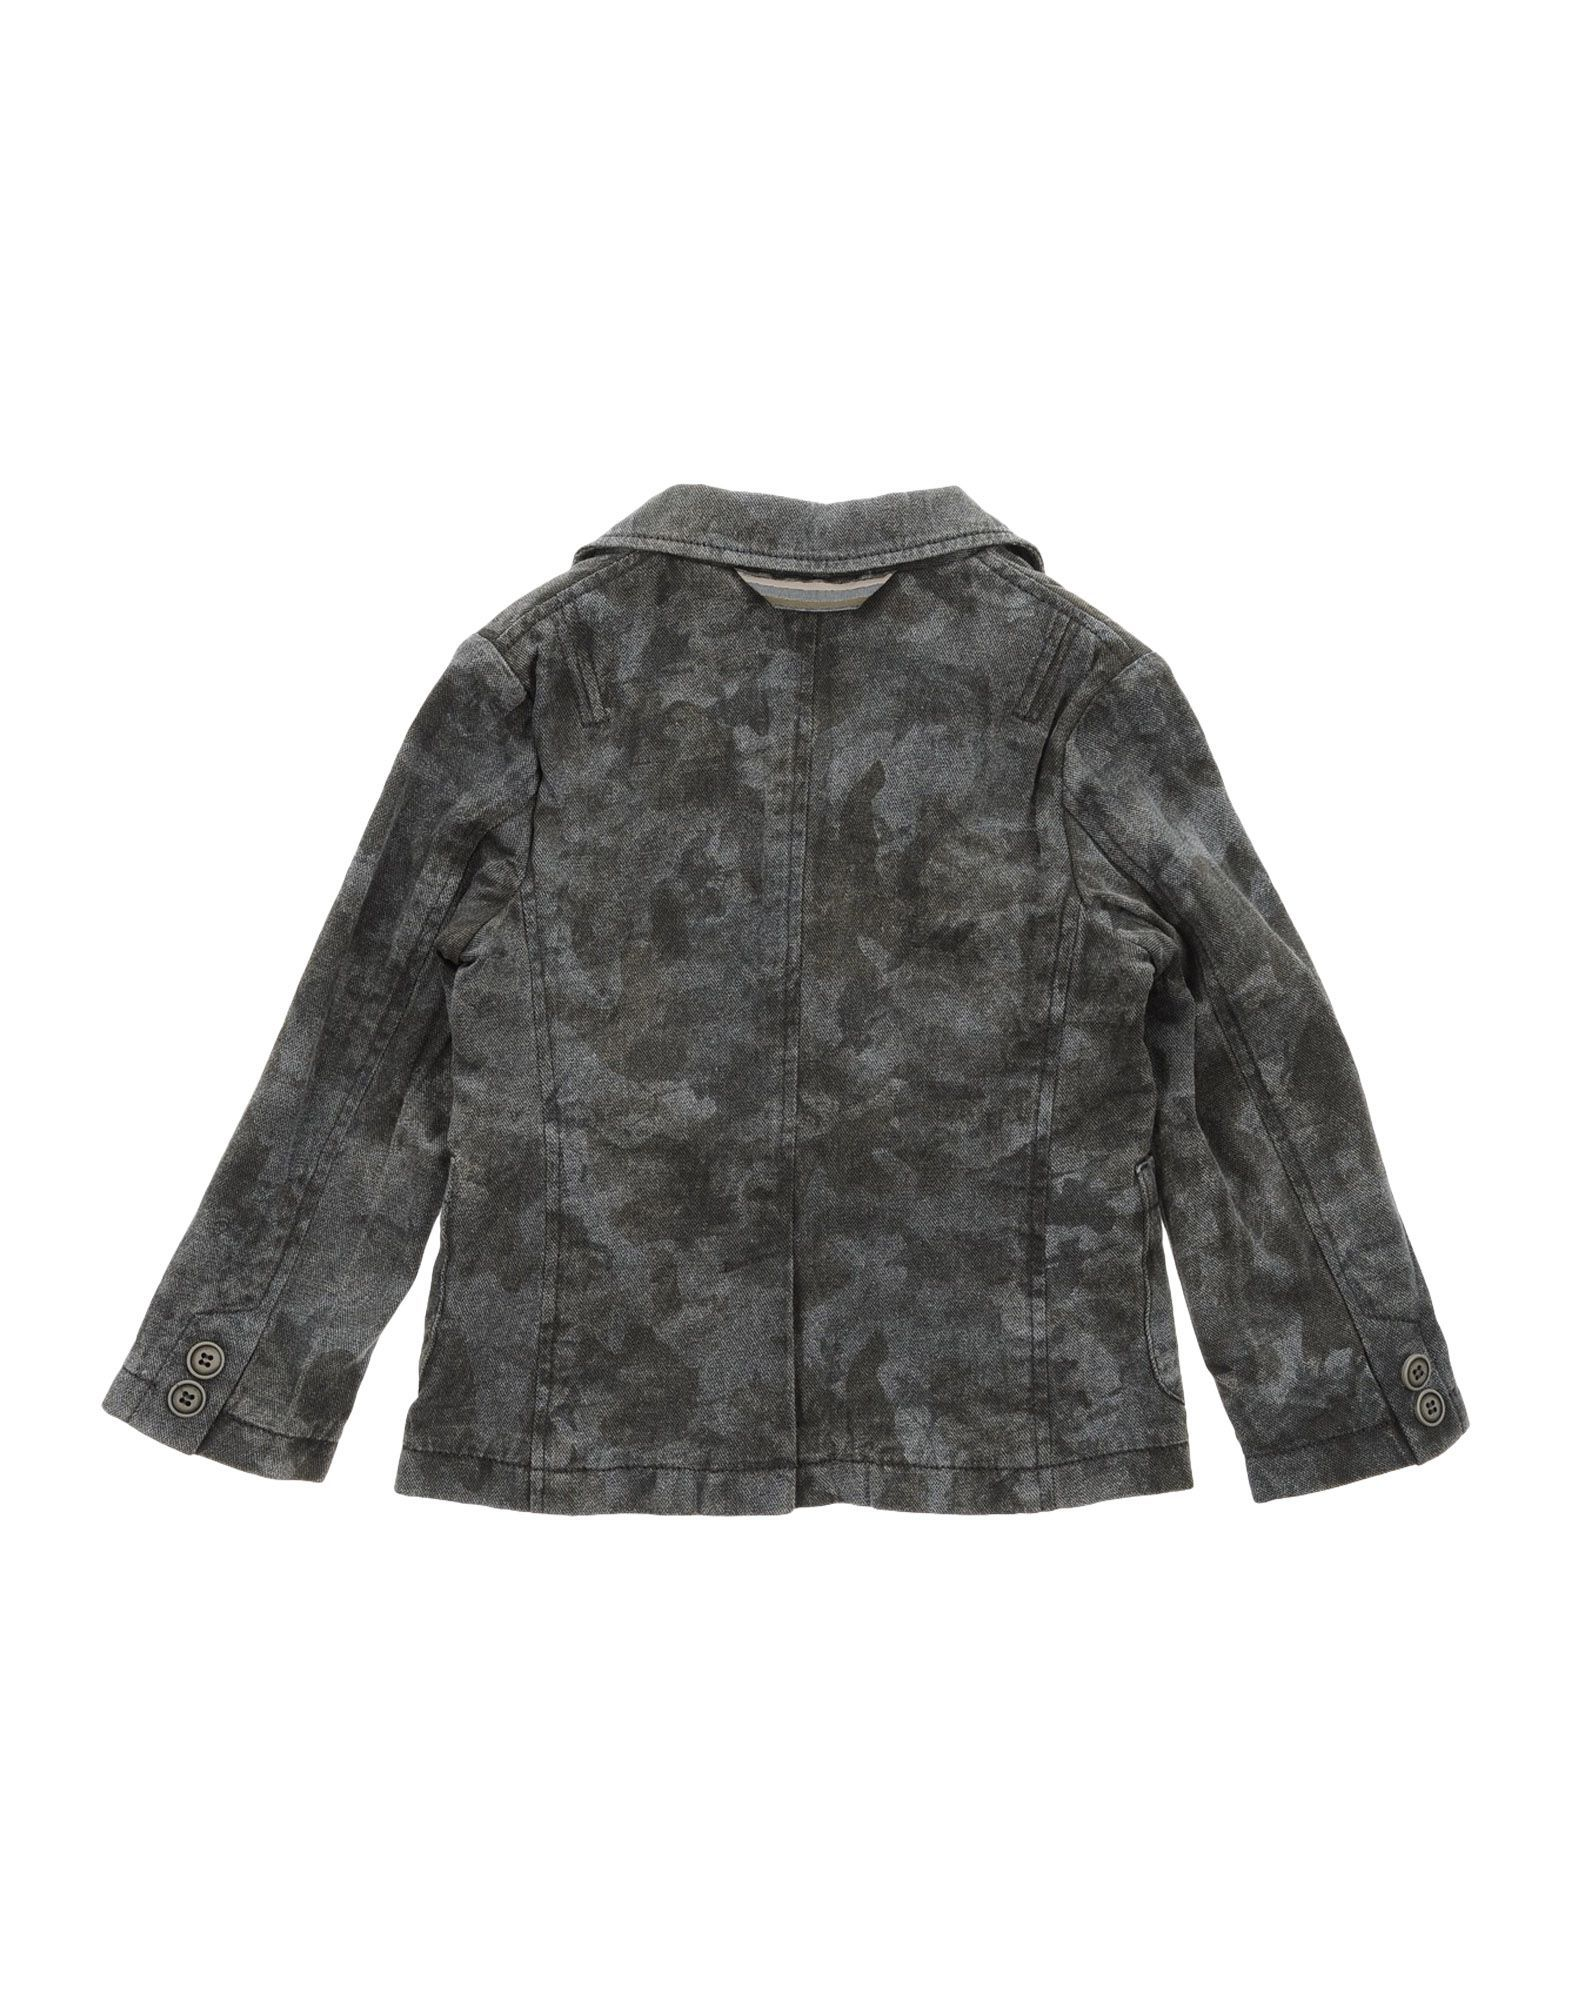 SUITS AND JACKETS Paolo Pecora Steel grey Boy Cotton